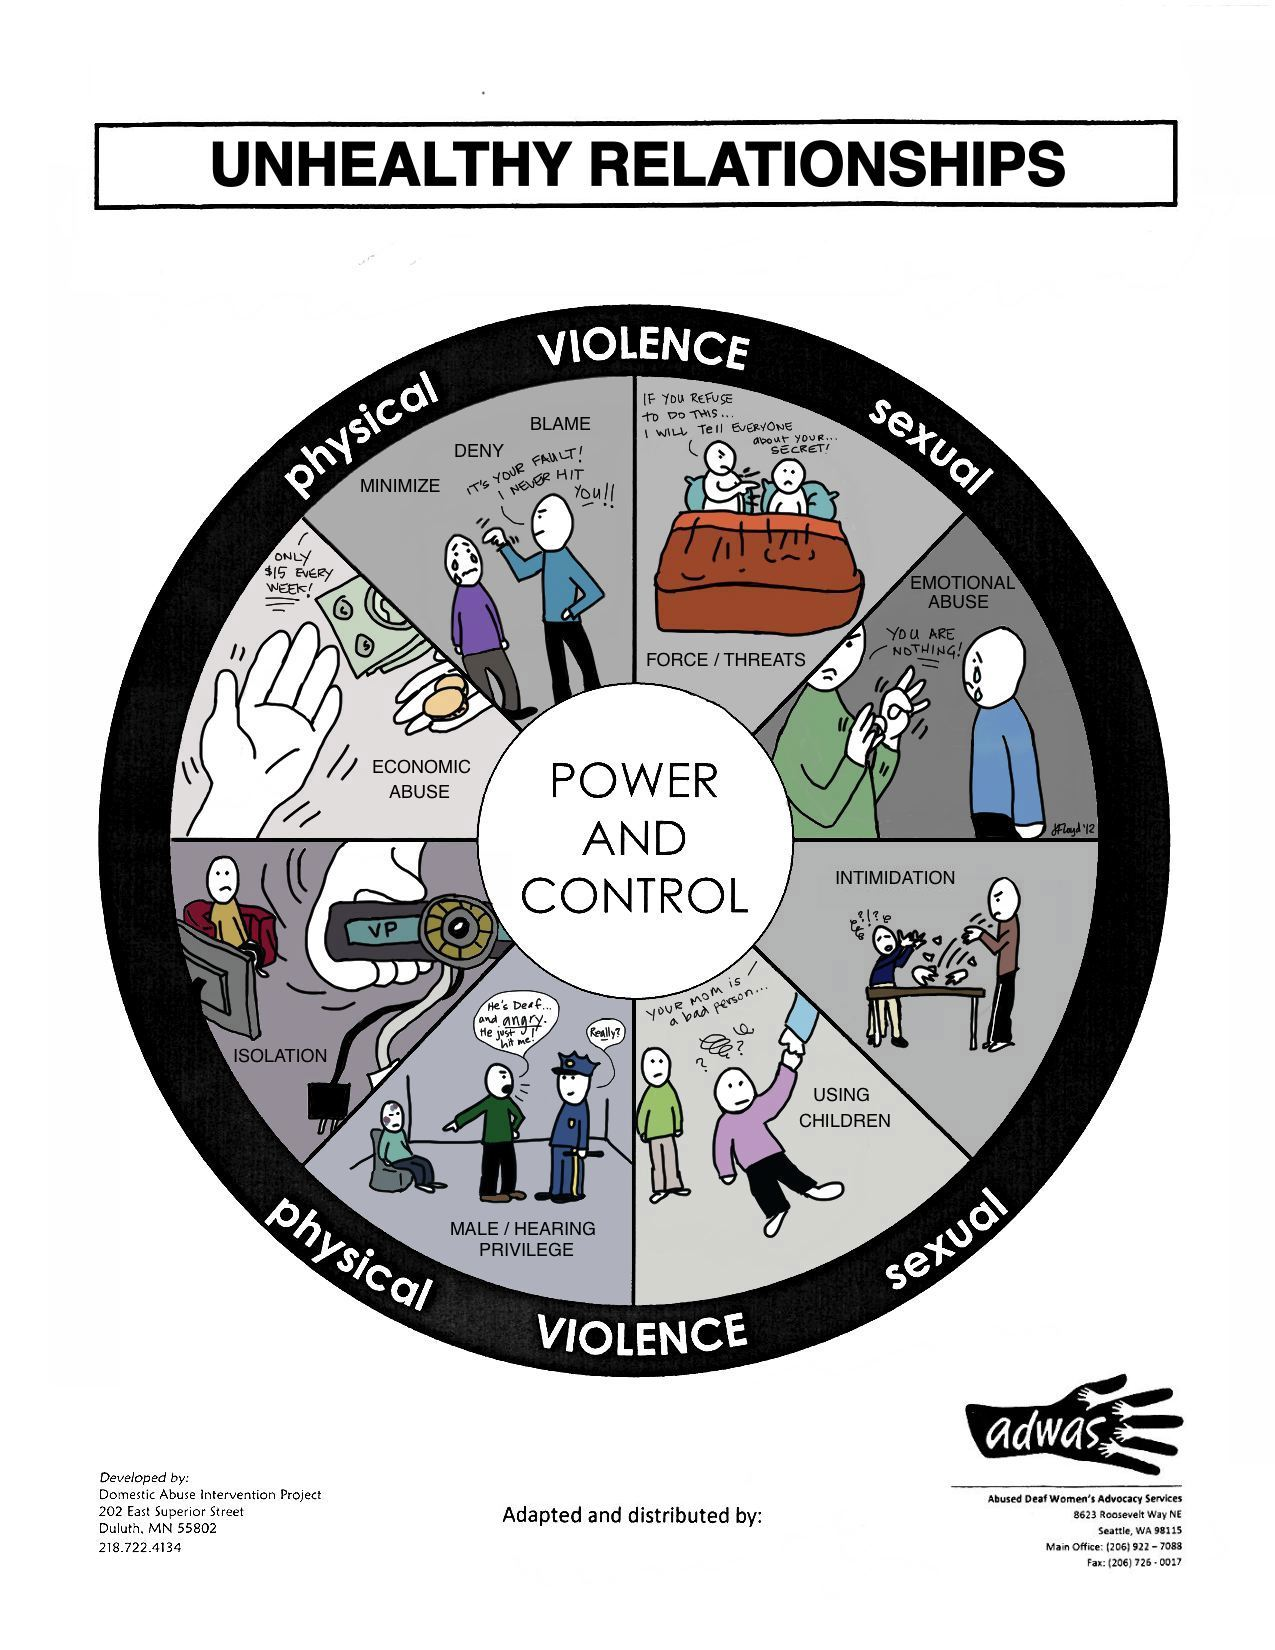 power and control in dating relationships Abusive relationships don't always include physical violence check out this power & control wheel to learn how people can be abused so you can spot the early warning signs and get out.